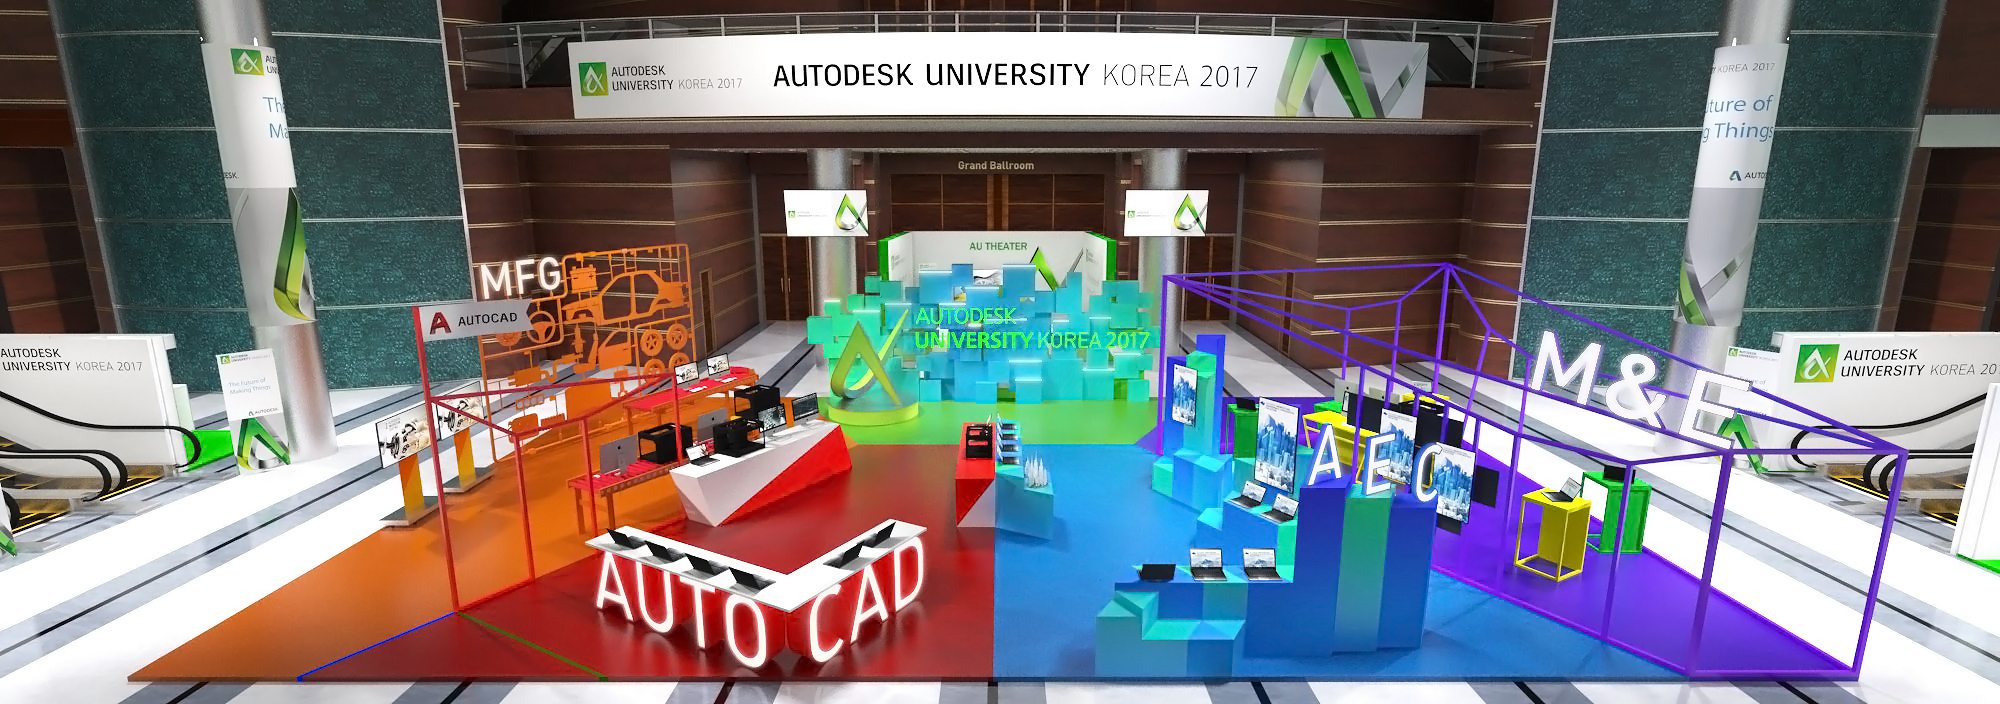 Autodesk University_EX _Rendering_10